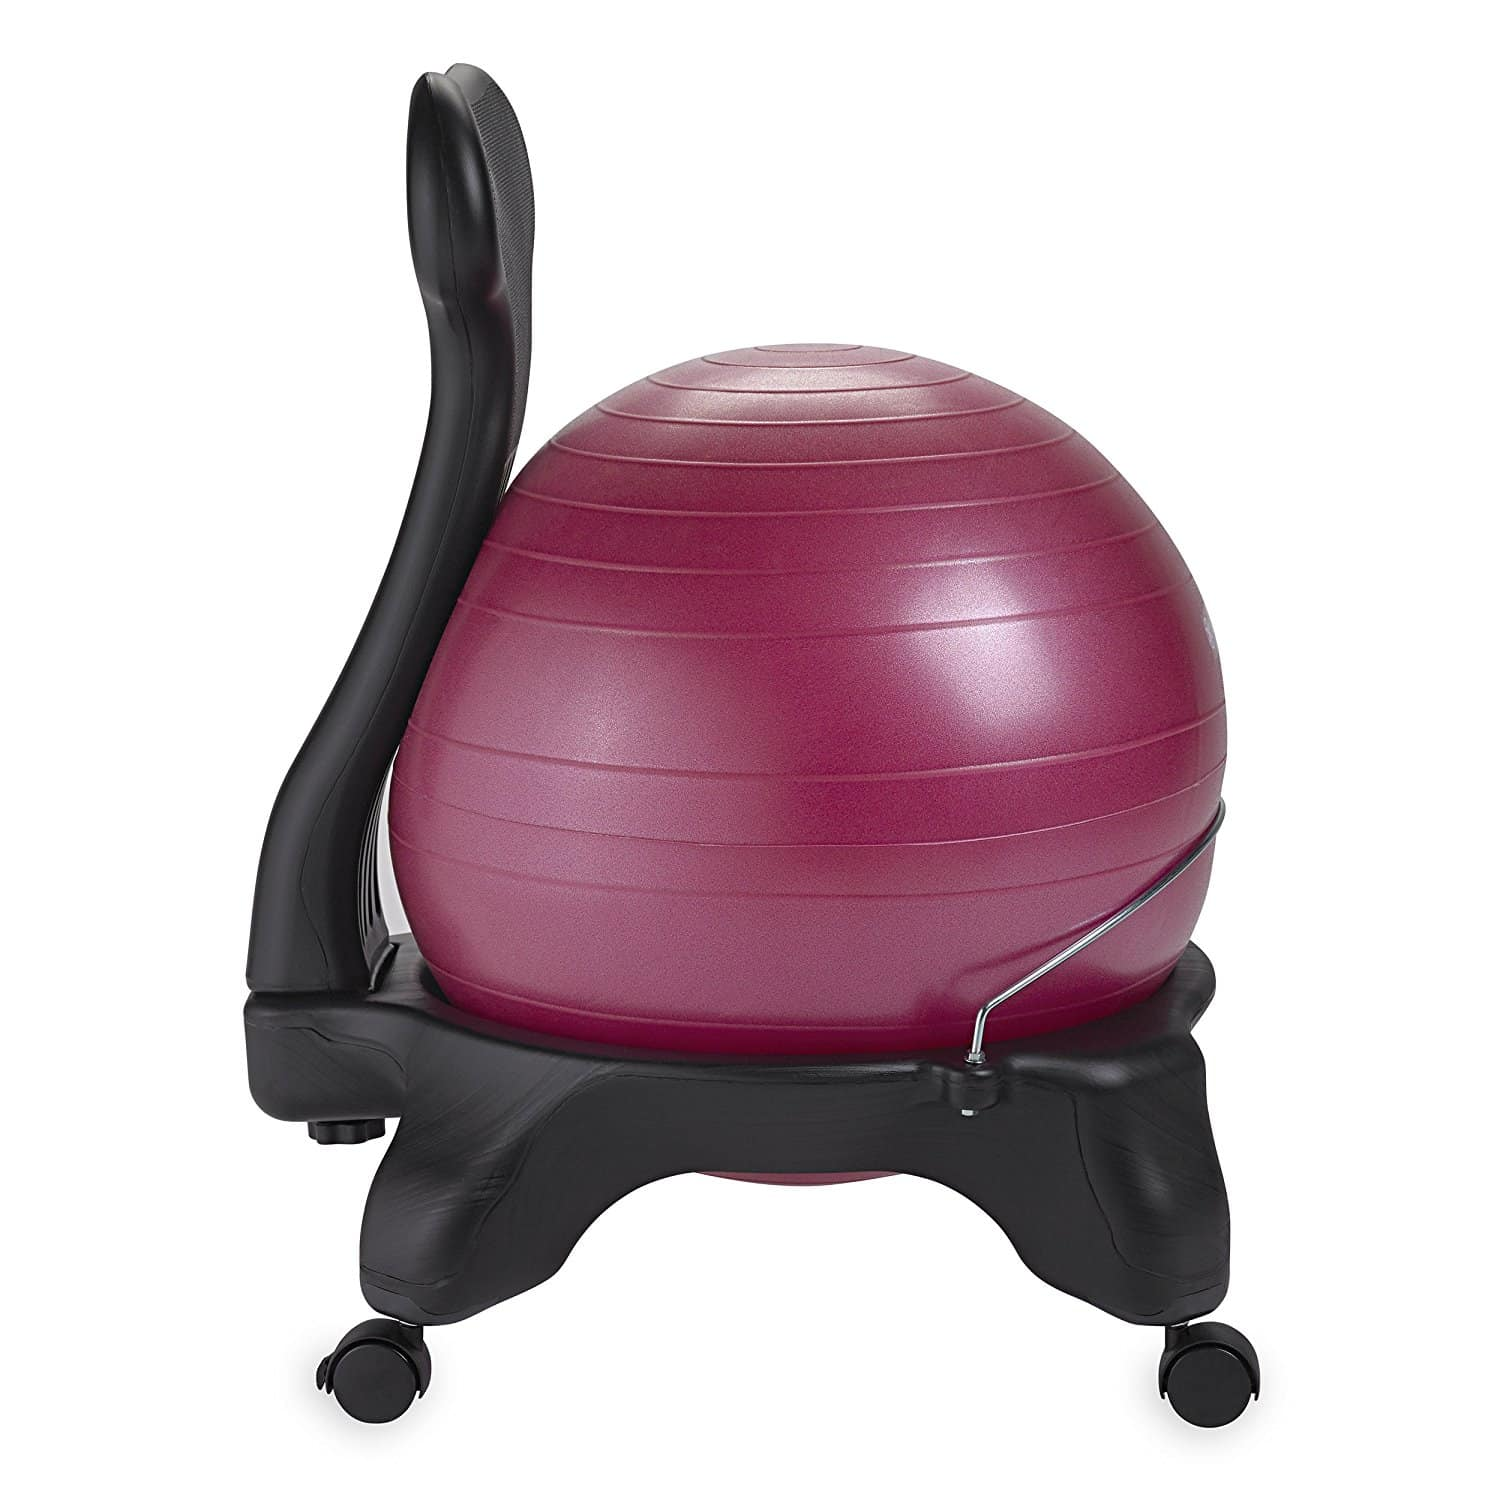 Top 10 Best Yoga Ball Chairs in 2020 Reviews | Buyer's Guide